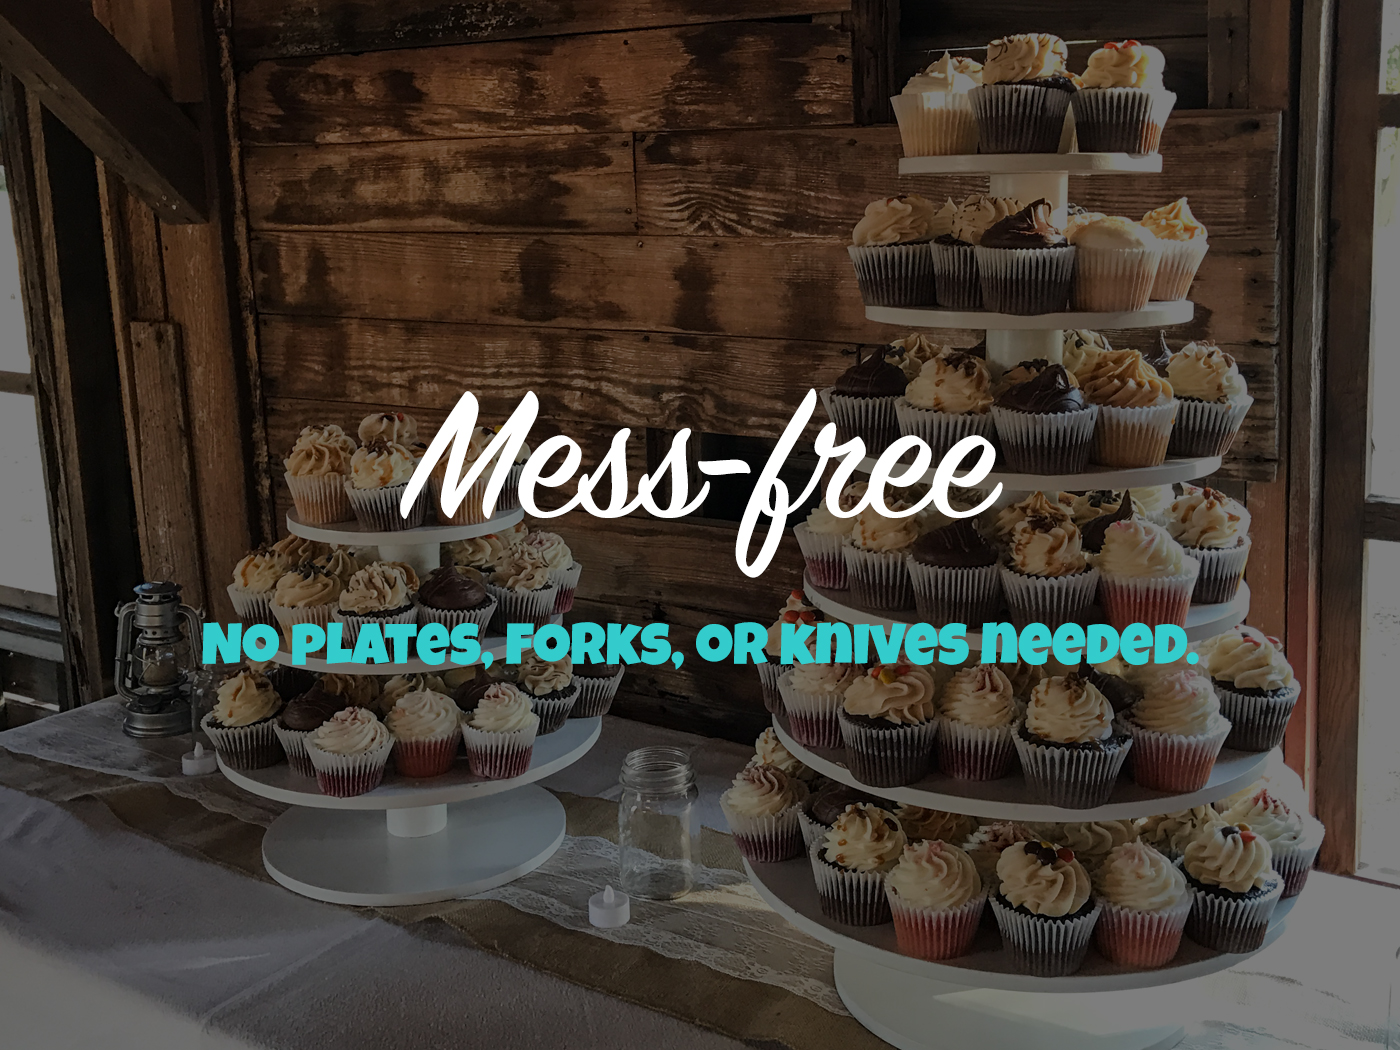 Mess-Free no plates, forks, or knives needed.